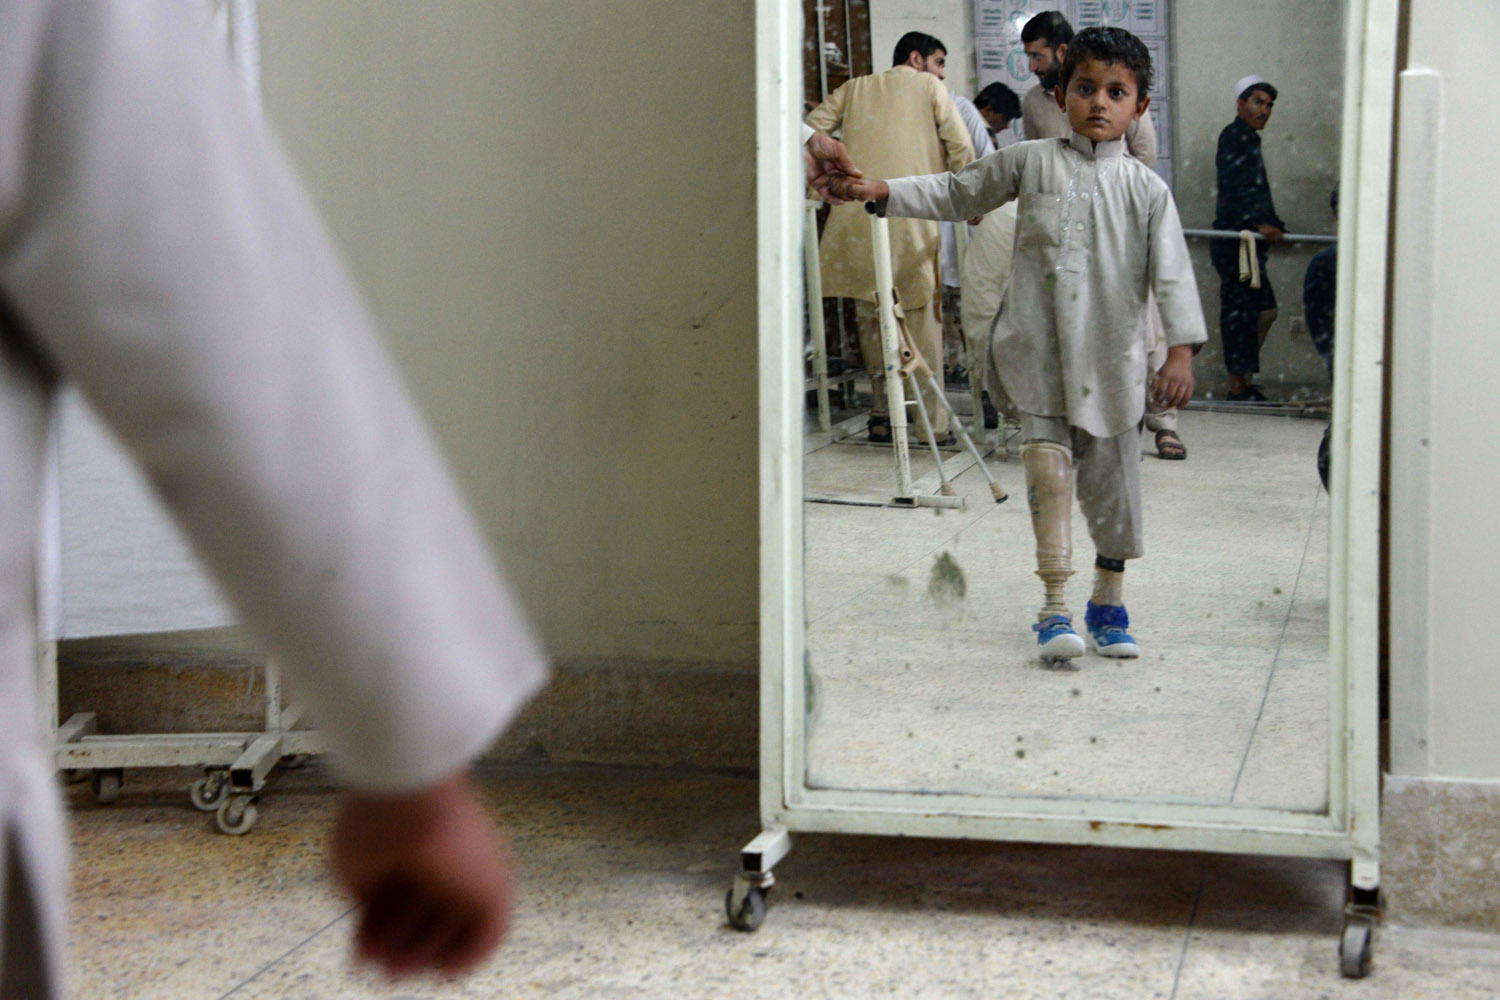 May 3, 2014. An Afghan child amputee practices walking with his prosthetic leg at one of the International Committee of the Red Cross (ICRC) hospital for war victims and the disabled in Jalalabad.